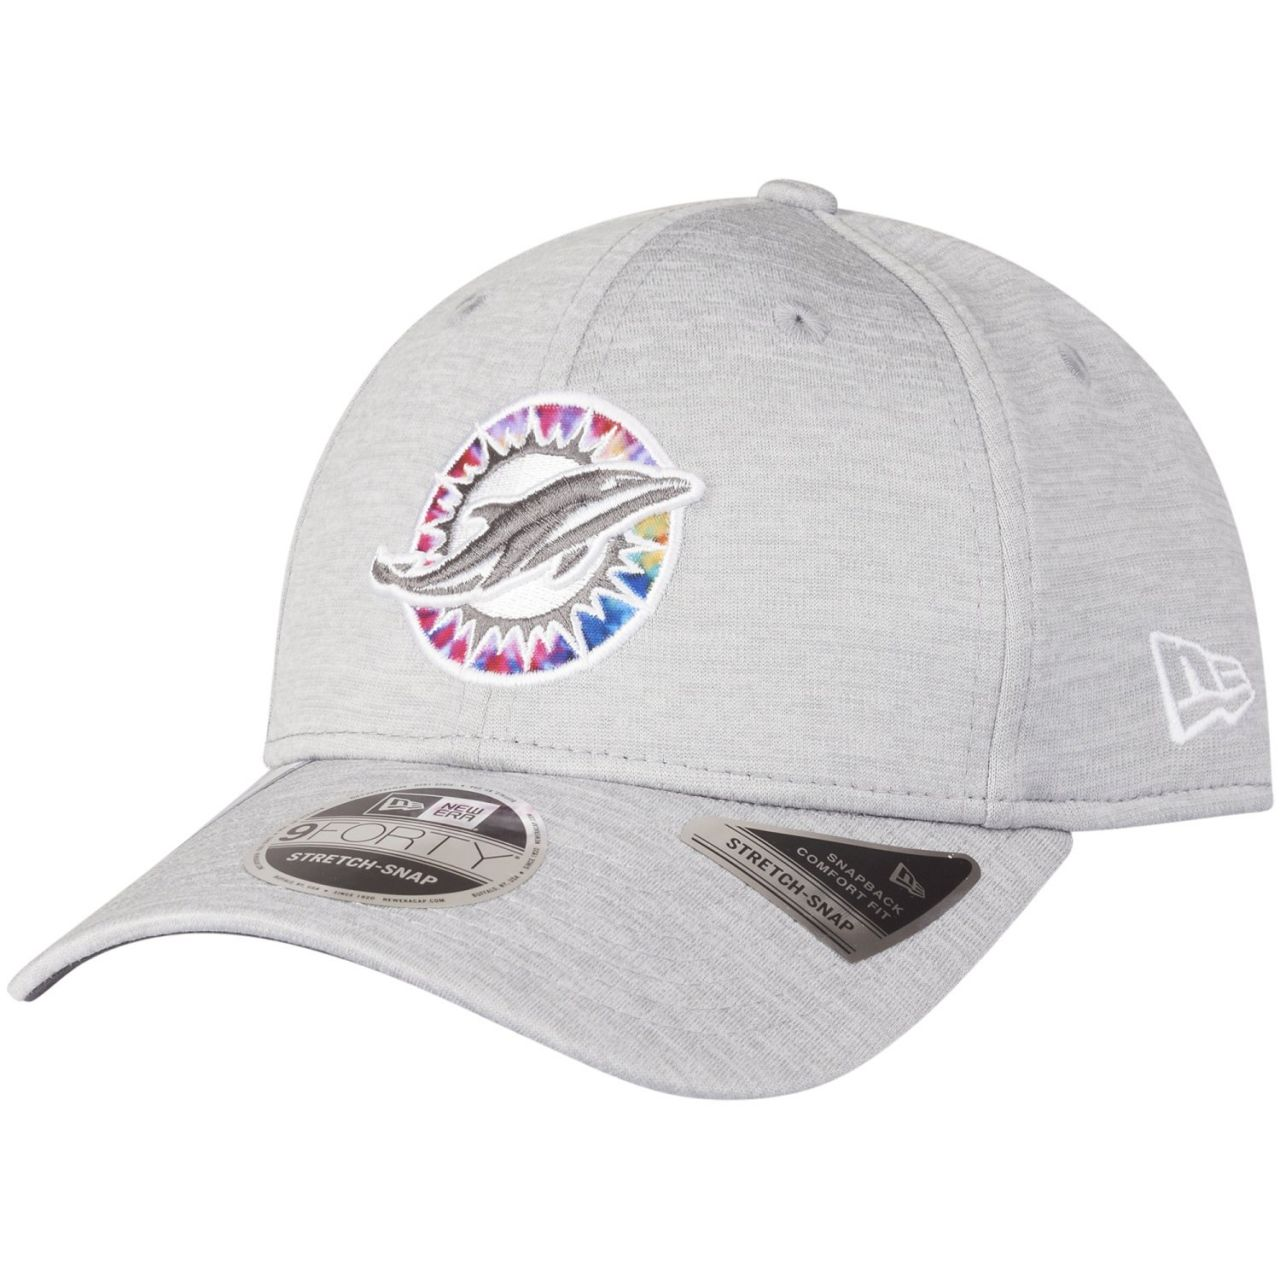 amfoo - New Era 9FORTY Stretch Cap - CRUCIAL CATCH Miami Dolphins